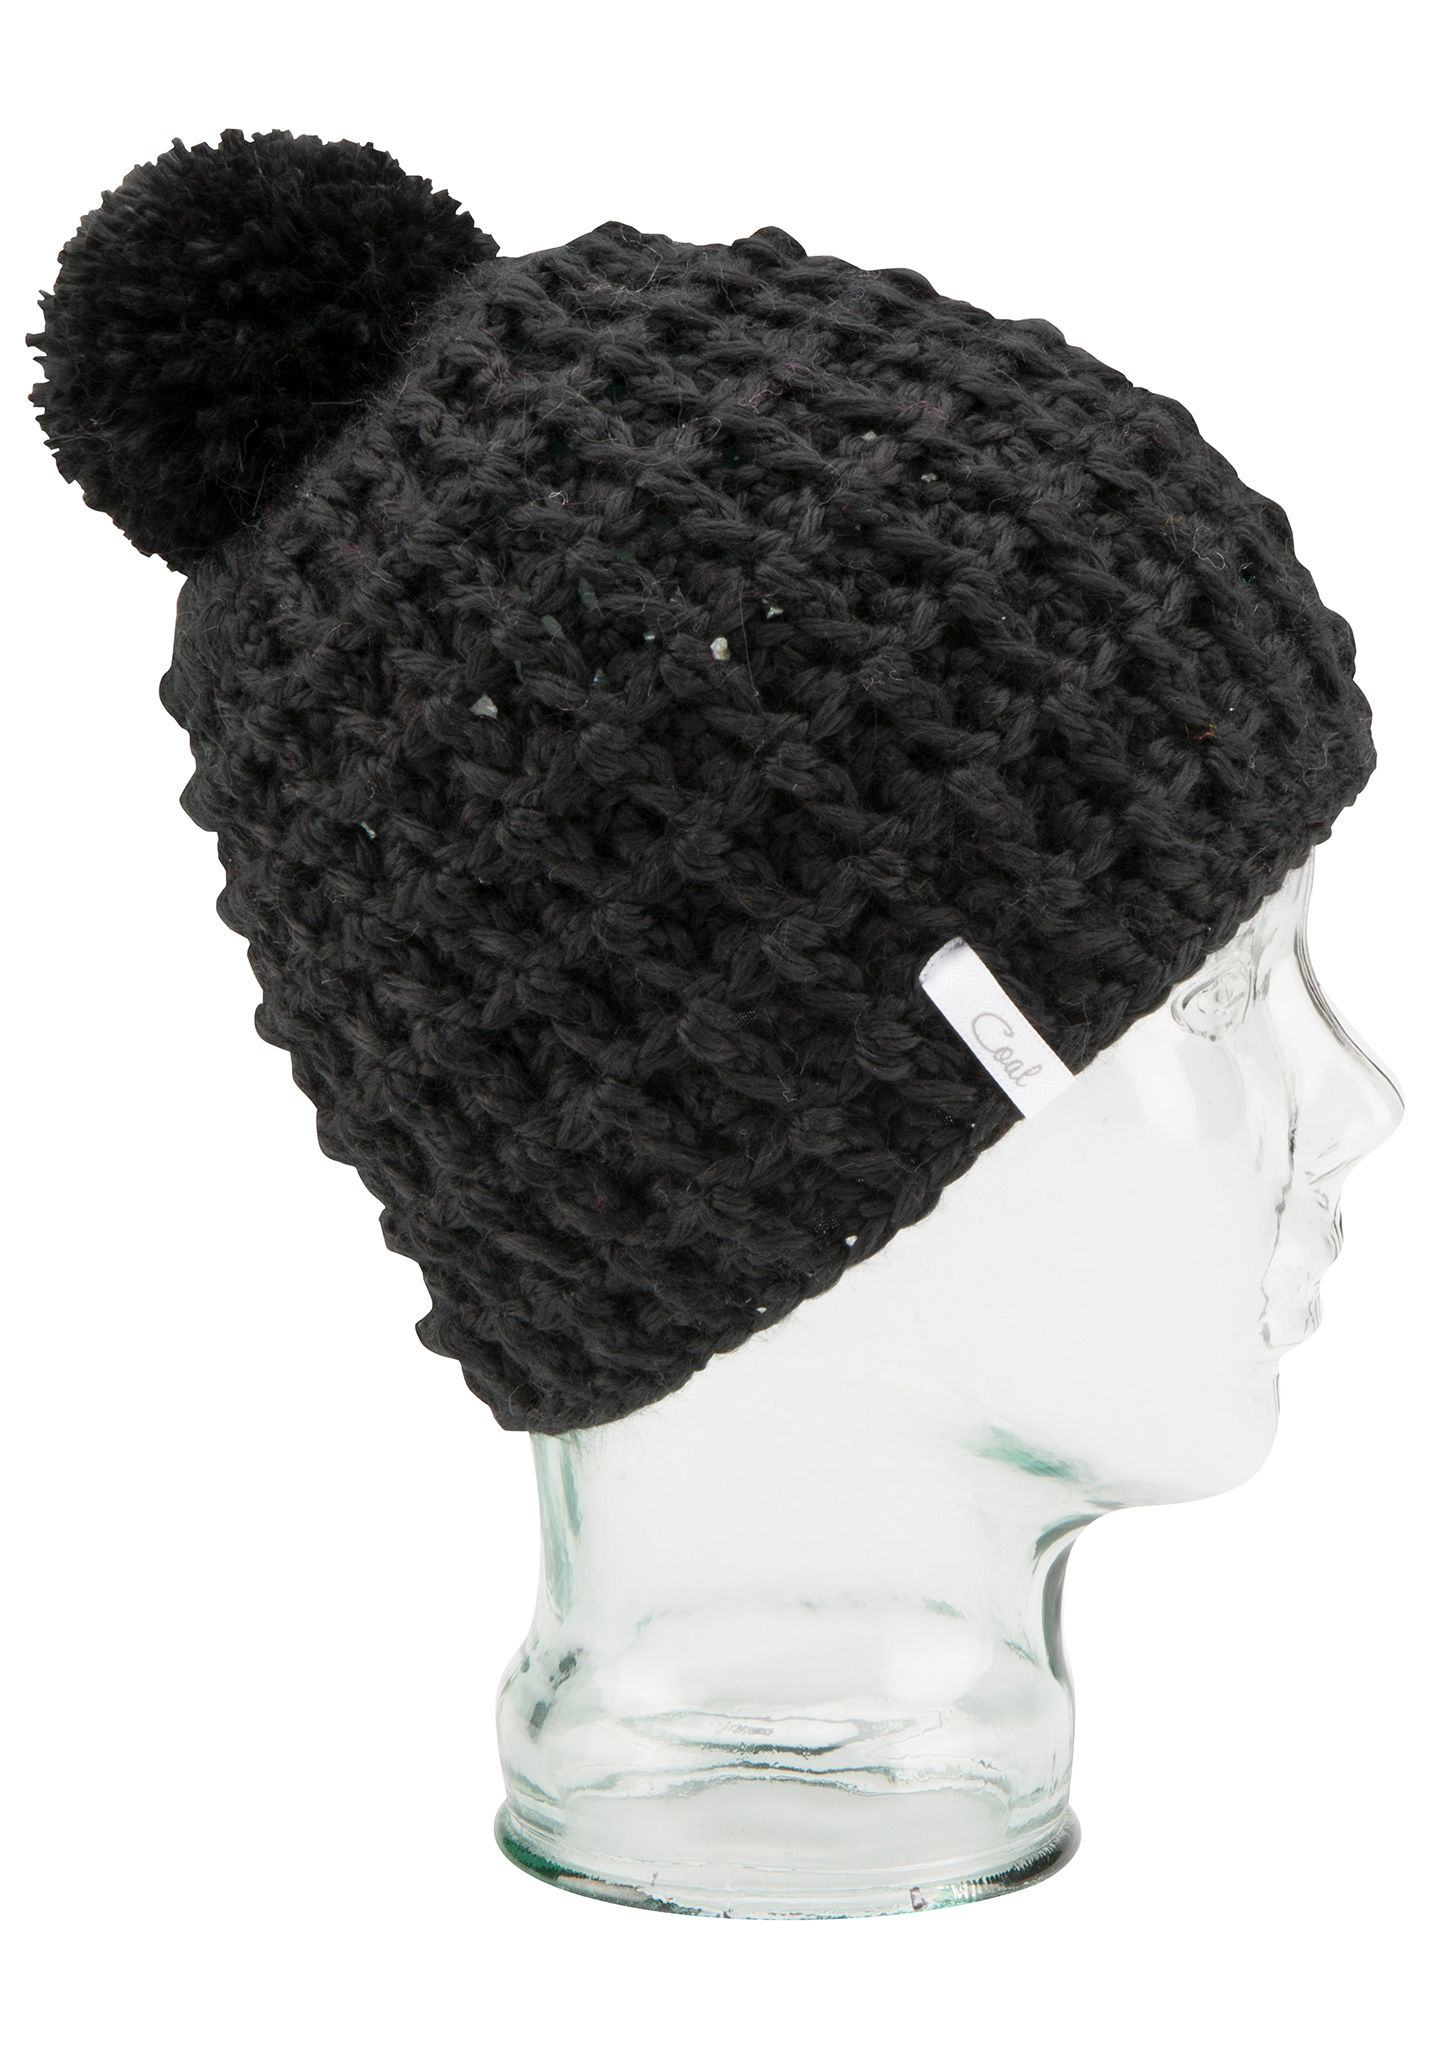 92b18eda7d7 Coal The Waffle - Beanie for Women - Black - Planet Sports